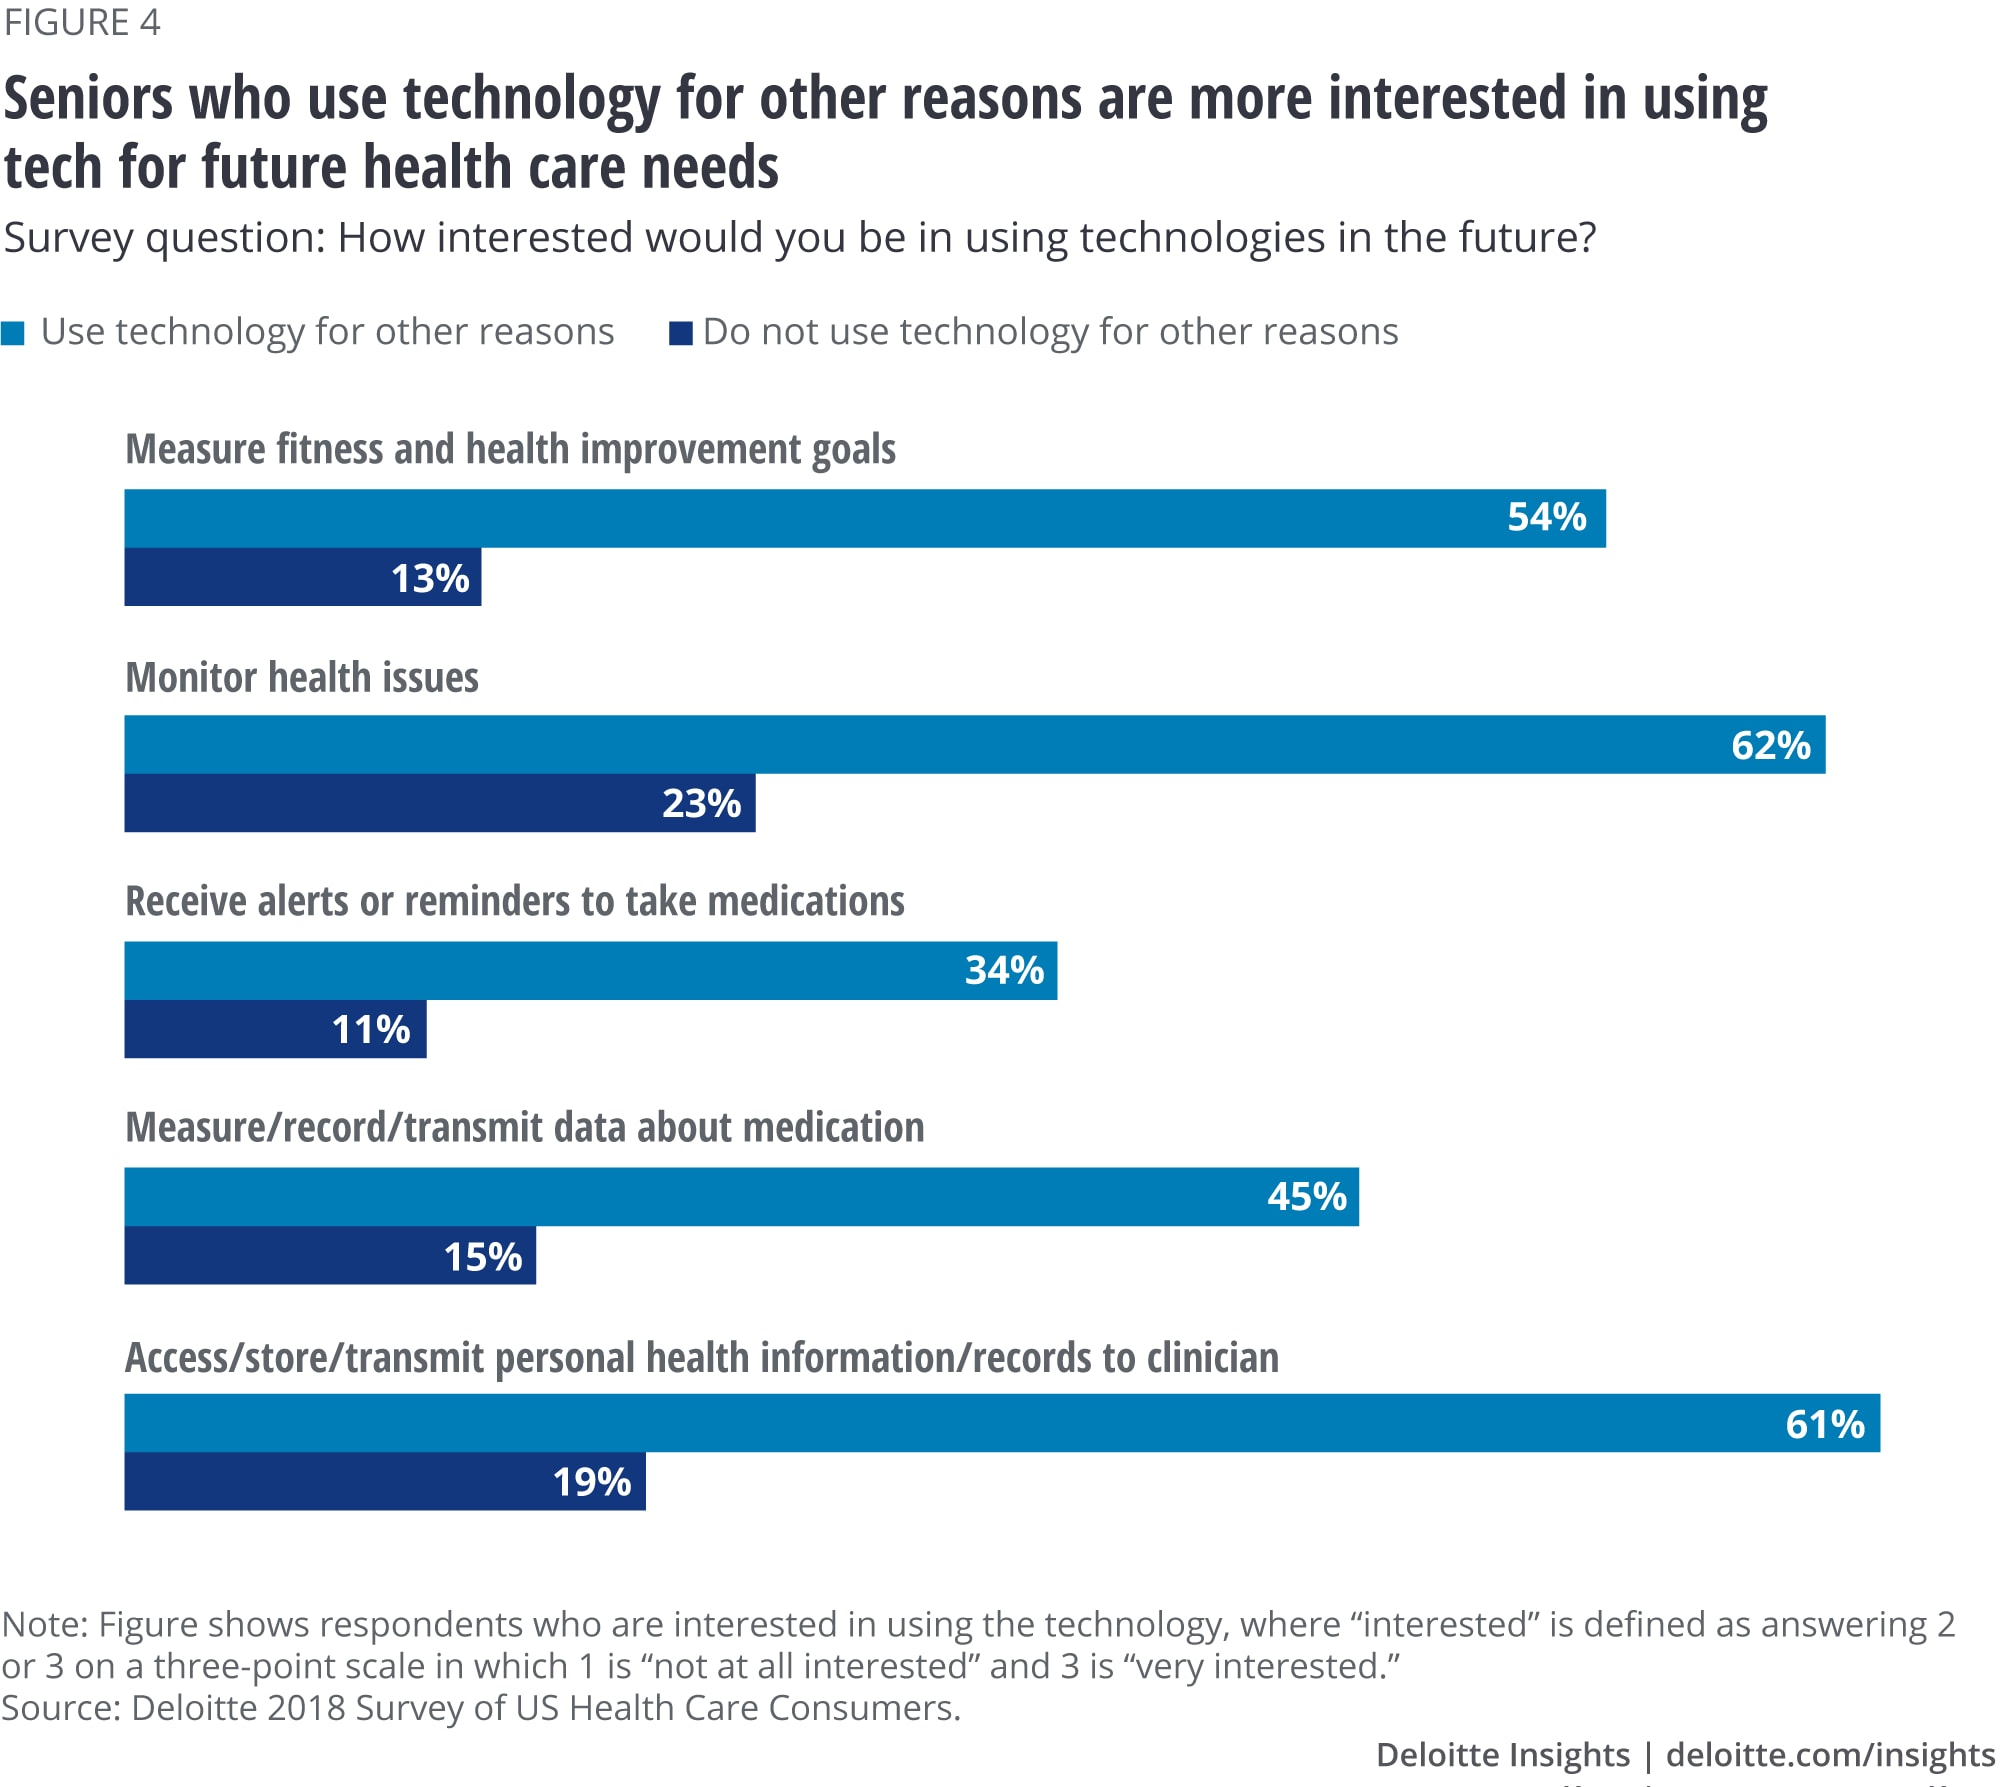 Seniors who use technology for other reasons are more interested in using tech for future health care needs